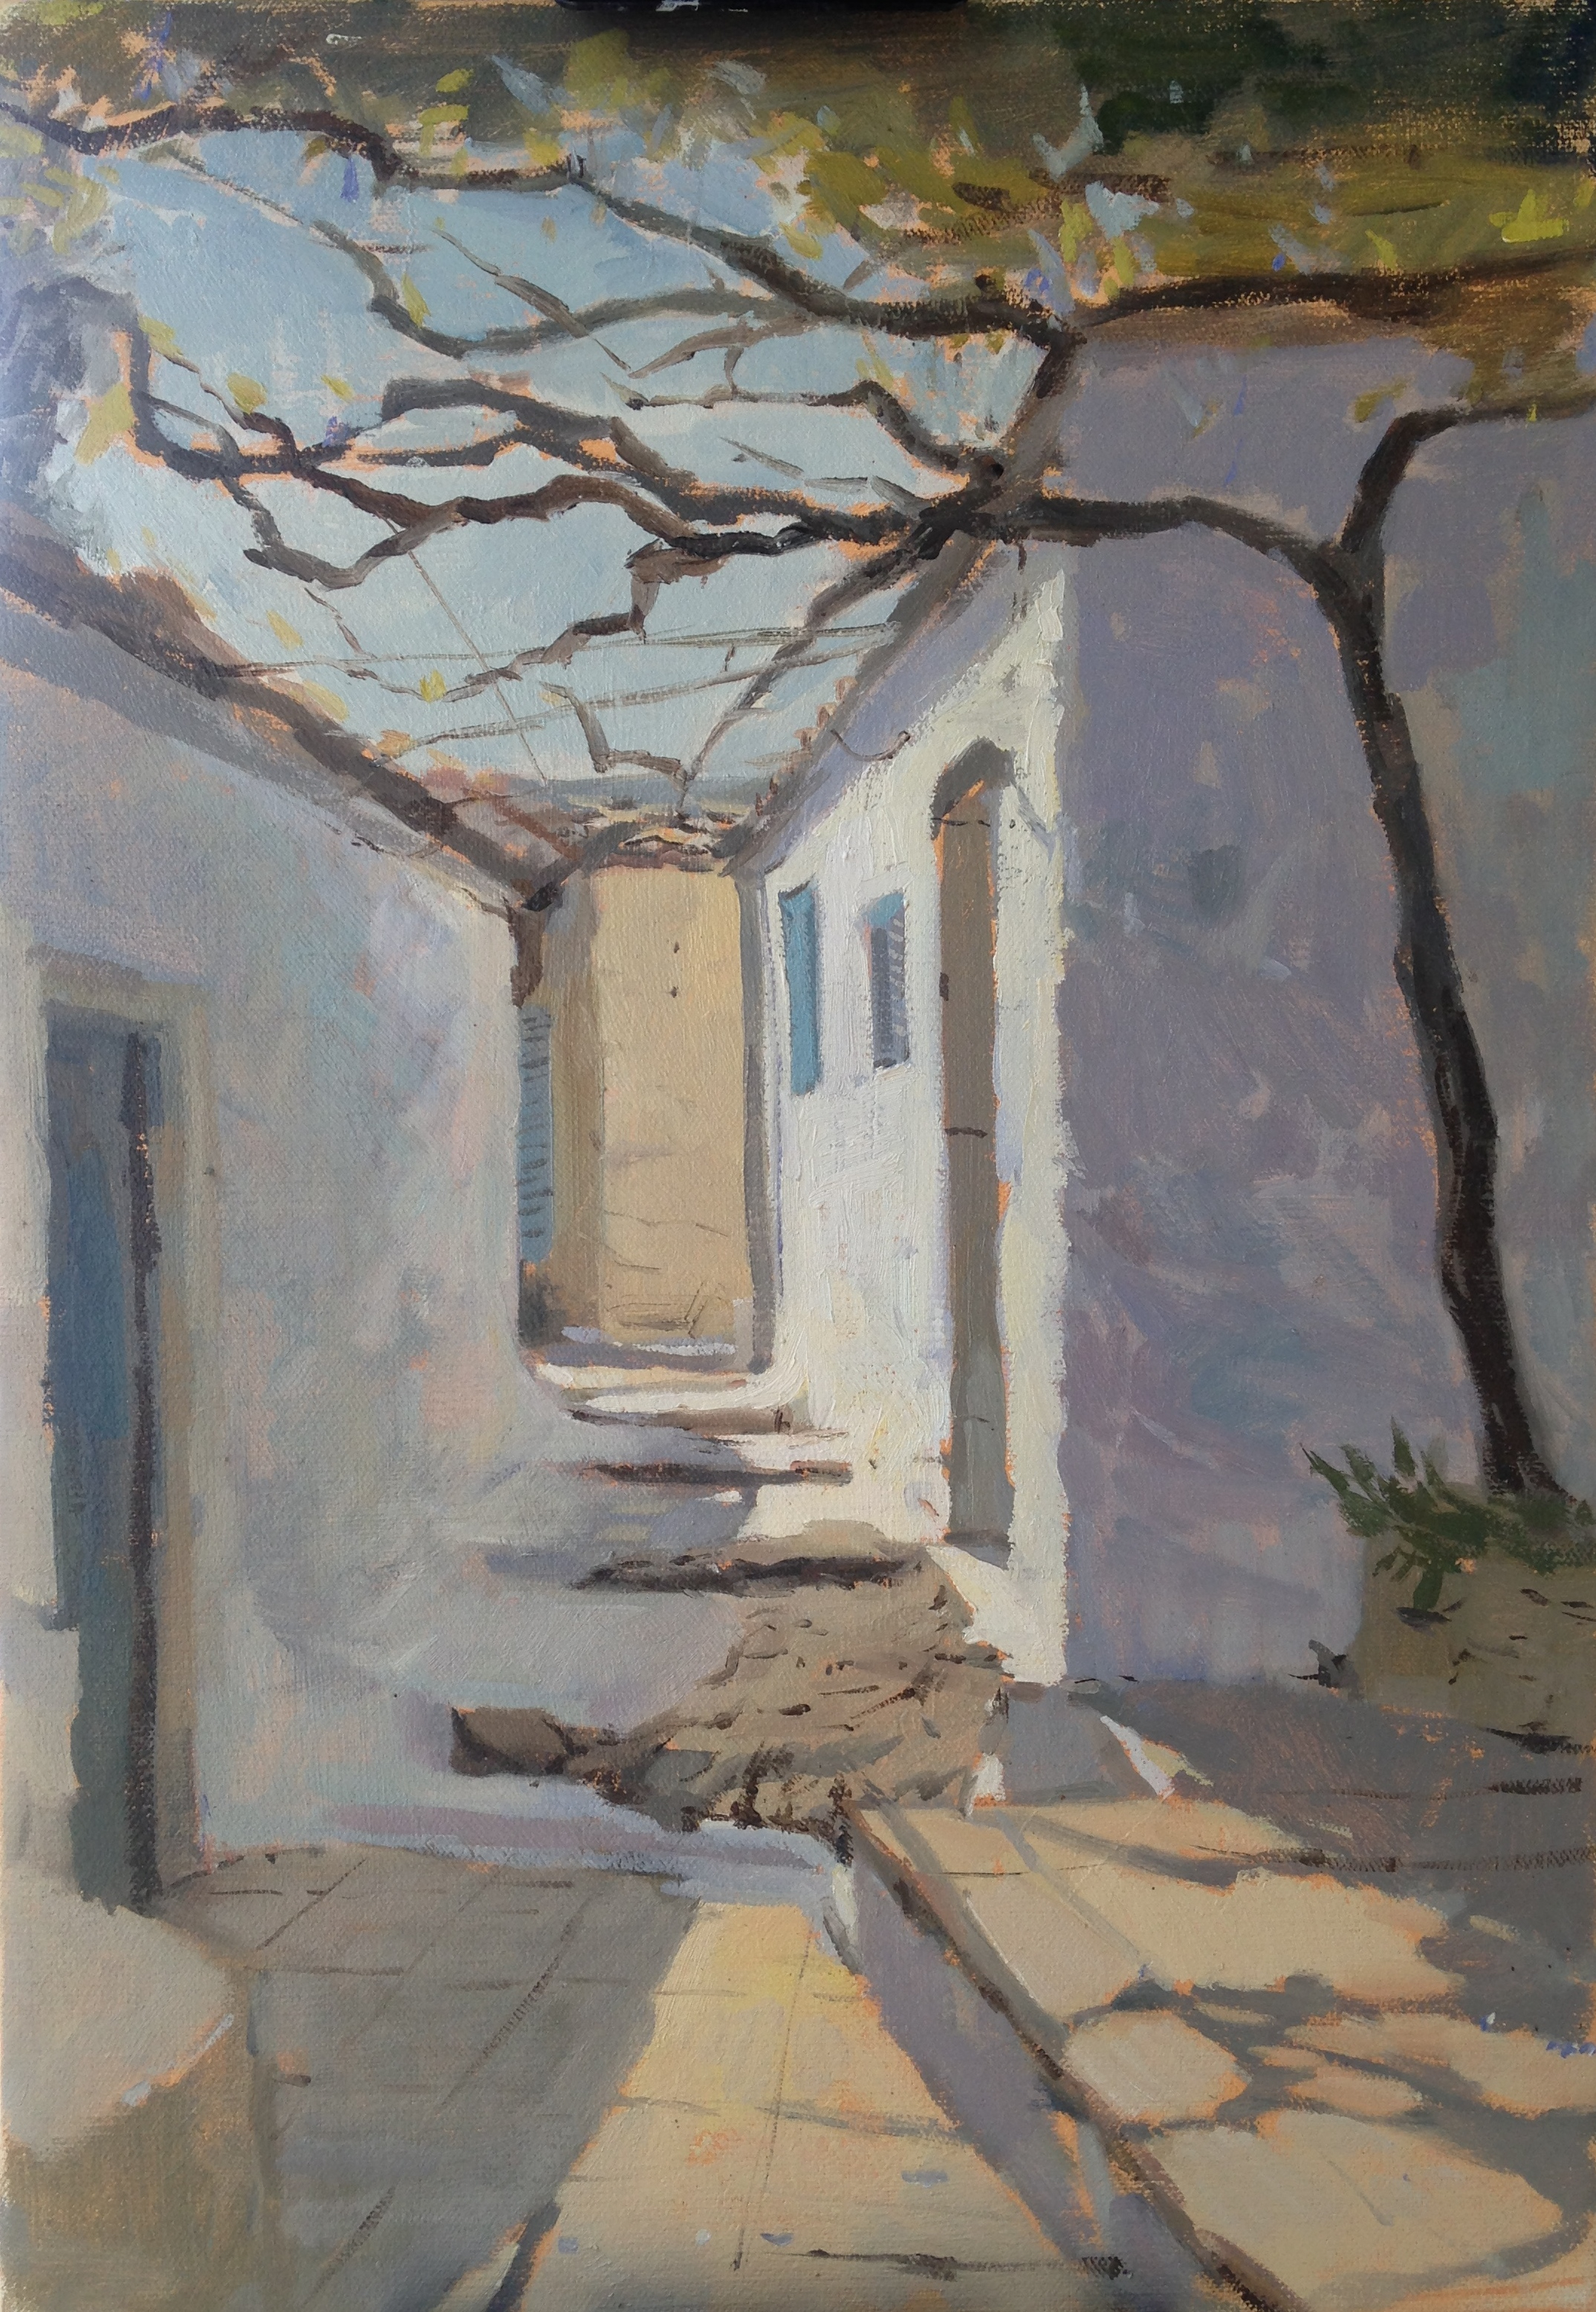 Afternoon light in Greece 35 cm x 50 cm Oil on Linen